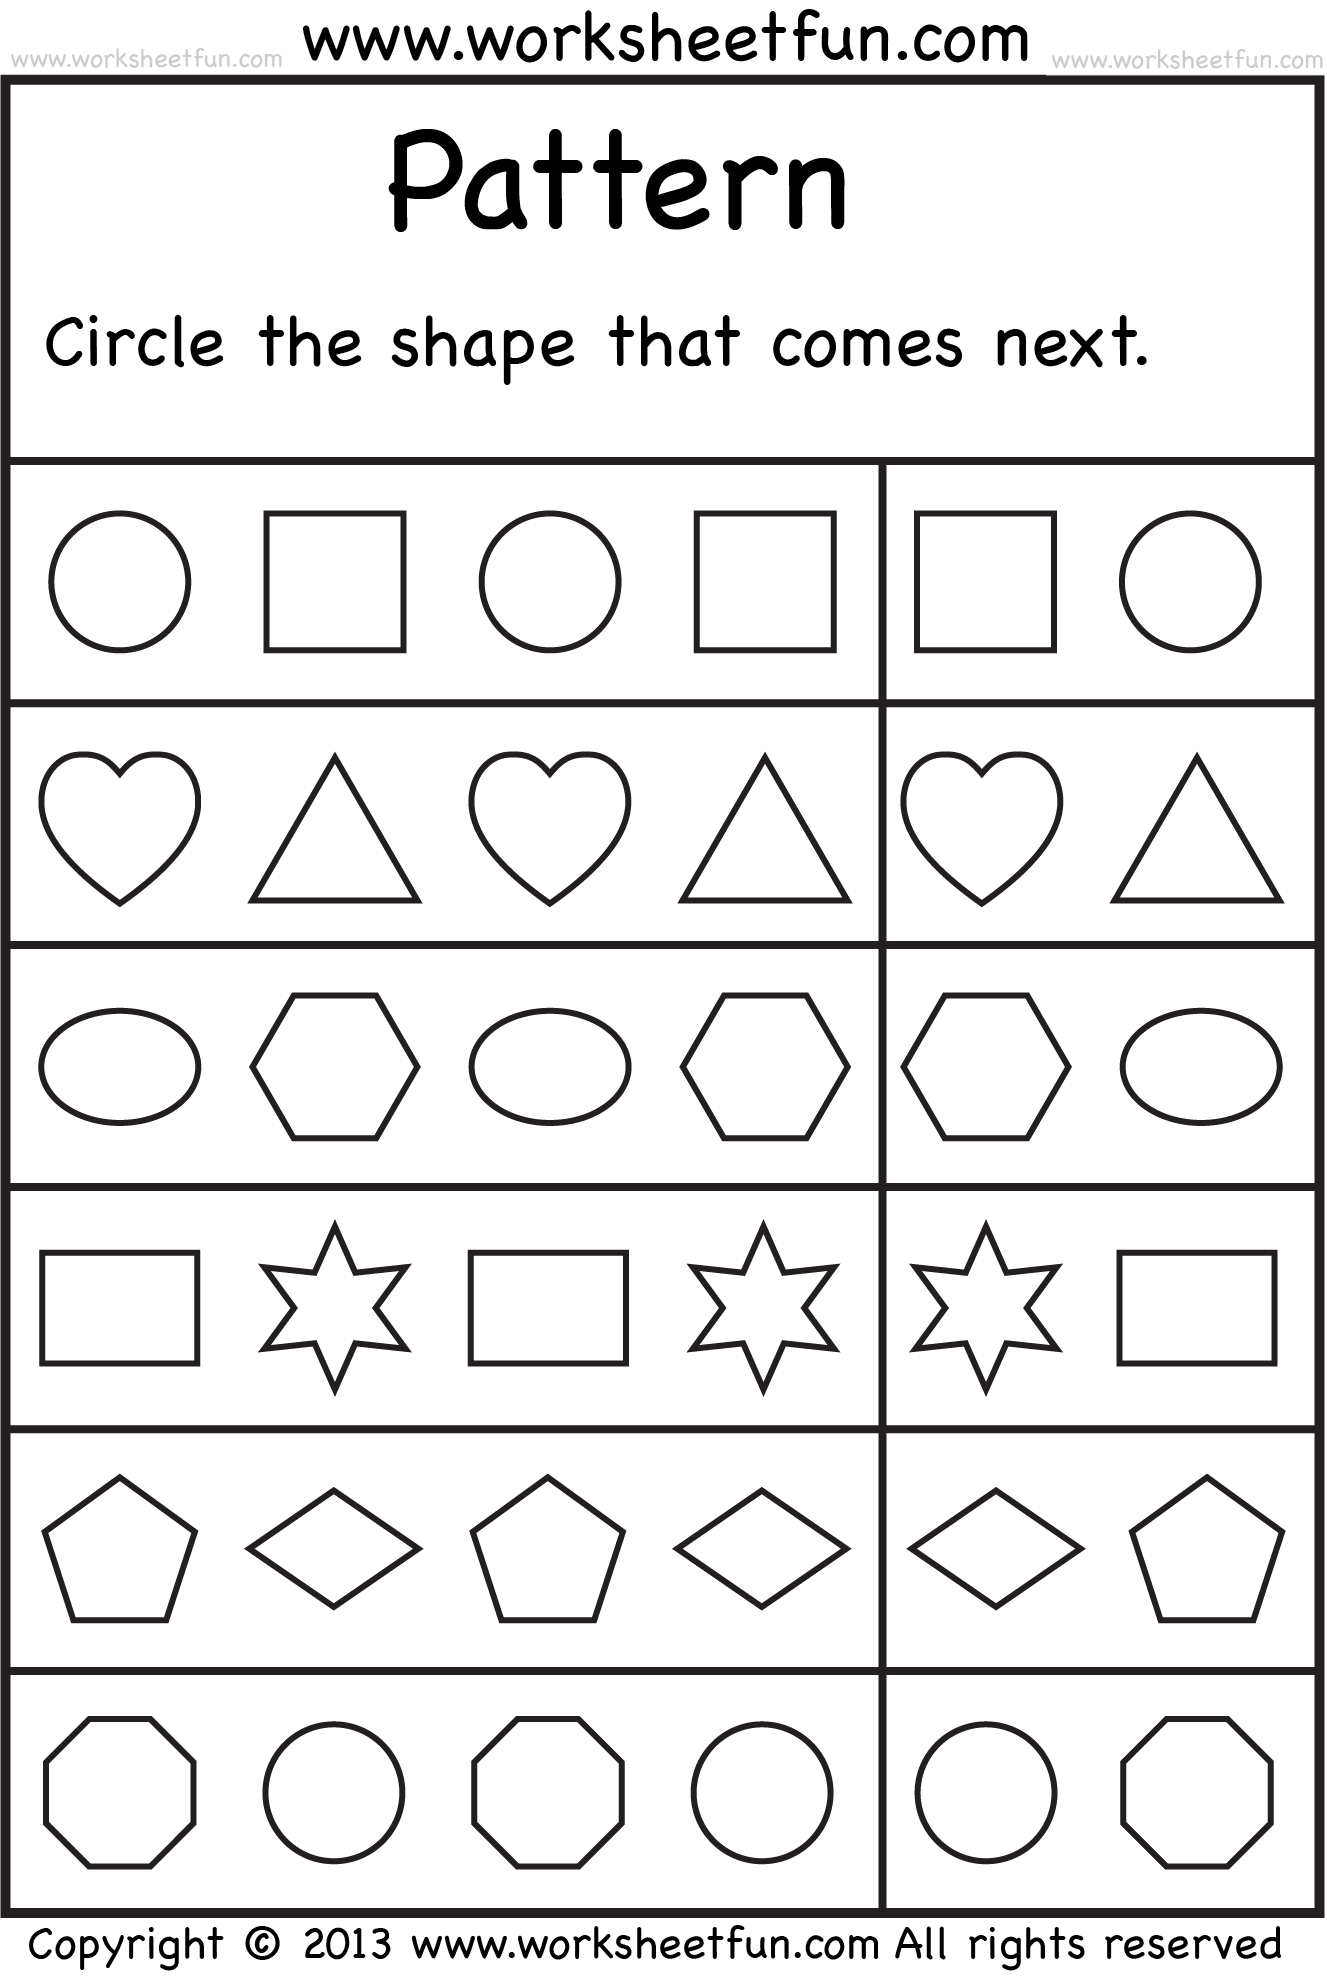 hight resolution of kindergarten worksheet   Pattern worksheets for kindergarten